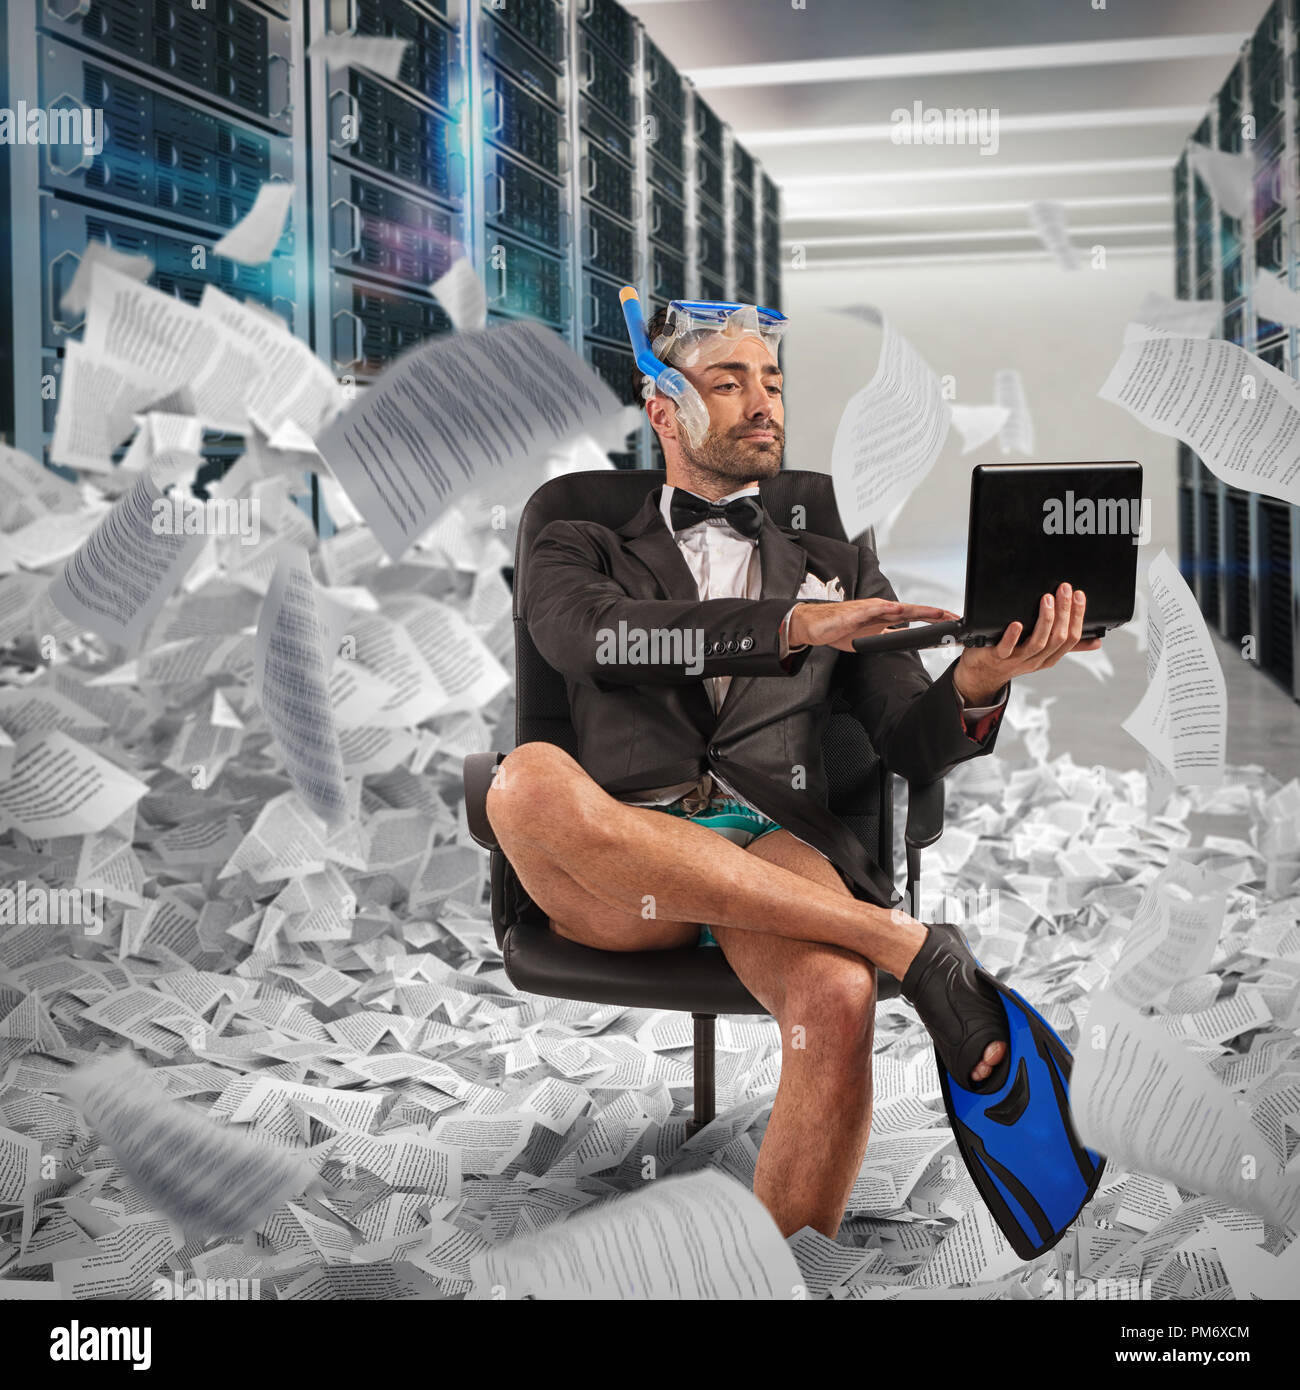 Digitization concept from paper to digital. Businessman uploads documents to a database - Stock Image